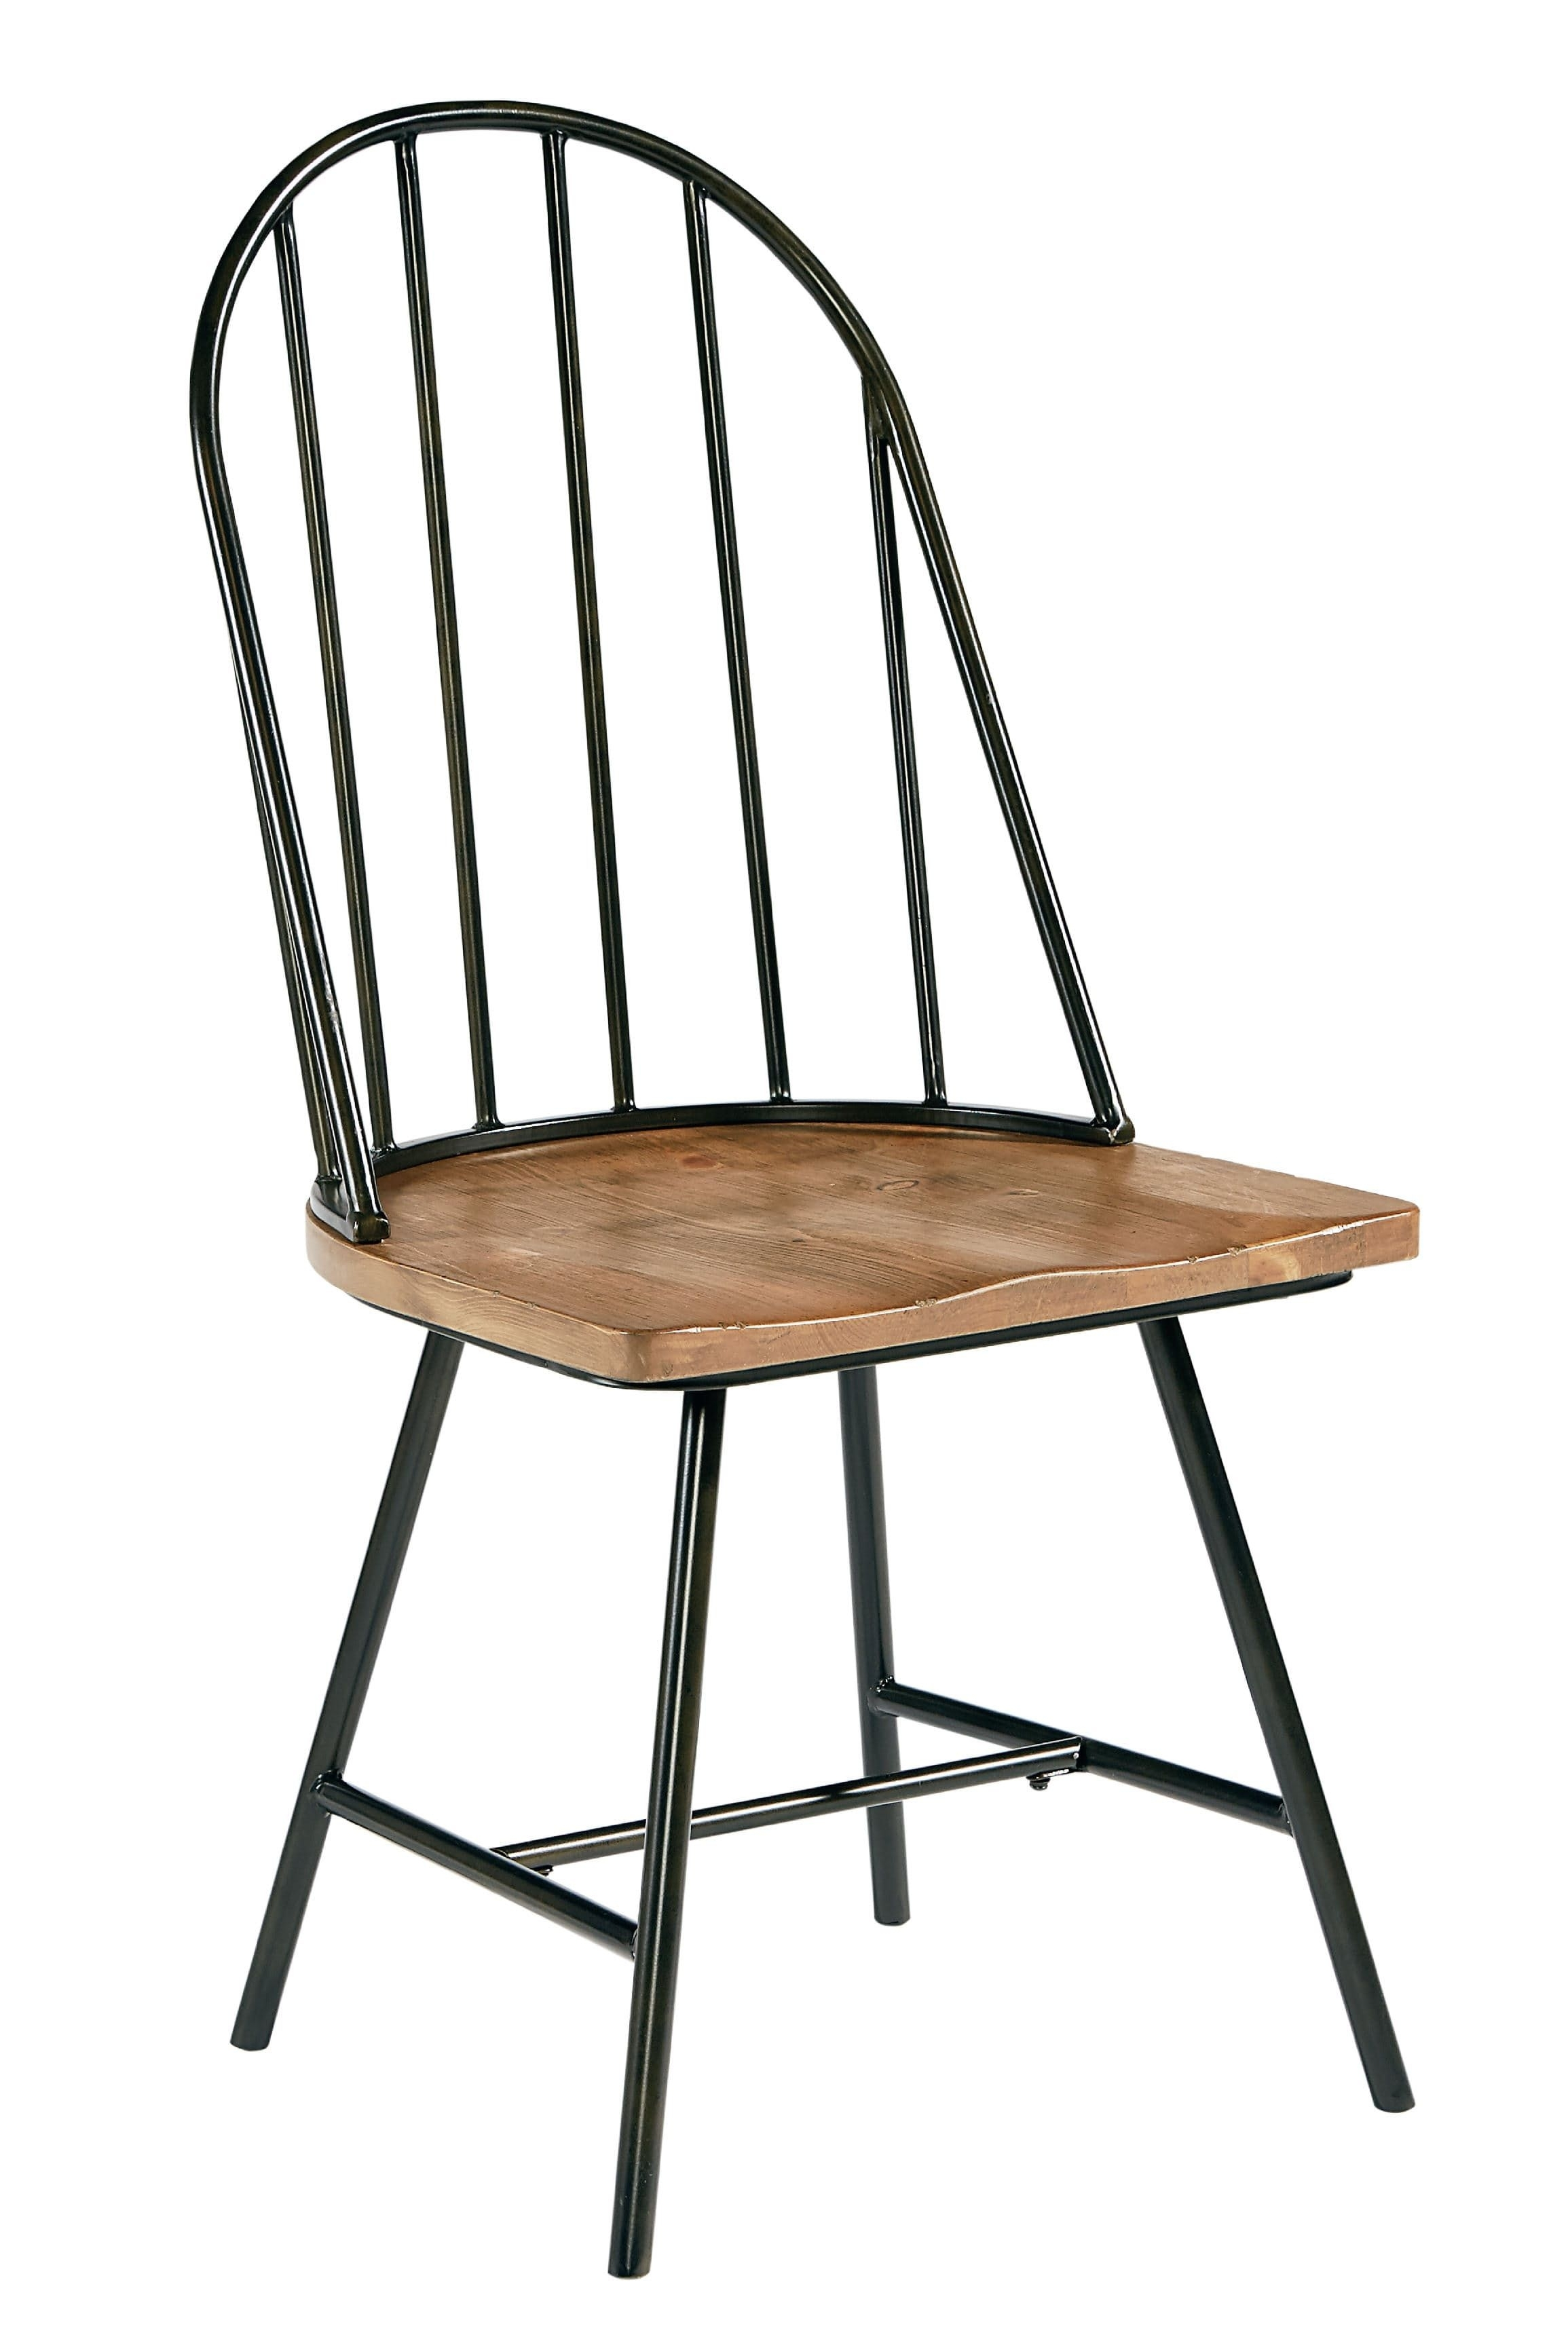 Inspiration about Magnolia Home Harper Patina Side Chairs Pertaining To Latest Magnolia Home – Windsor Metal And Wood Hoop Chair St:461600 (#12 of 20)